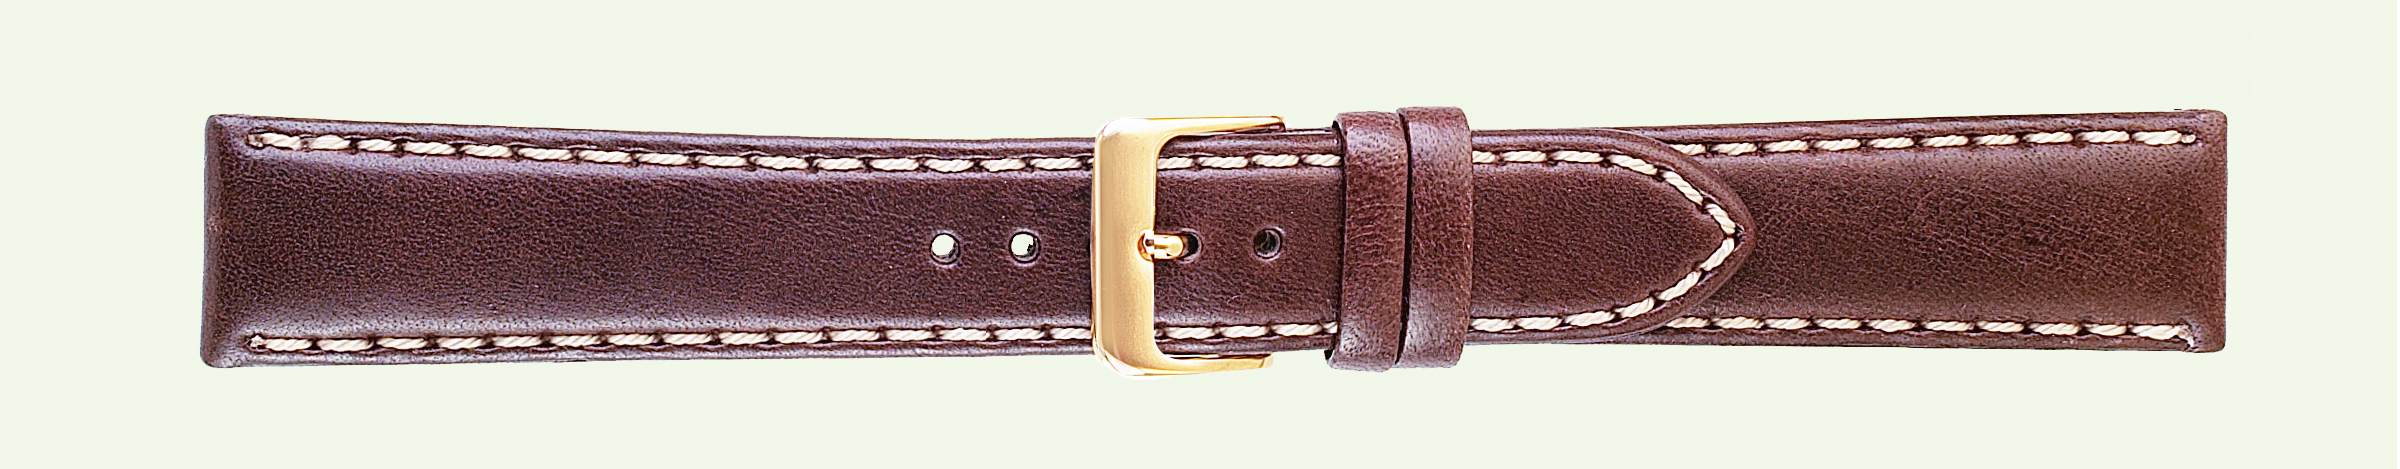 18MM Saddle Stitched Brown Leather Band-0